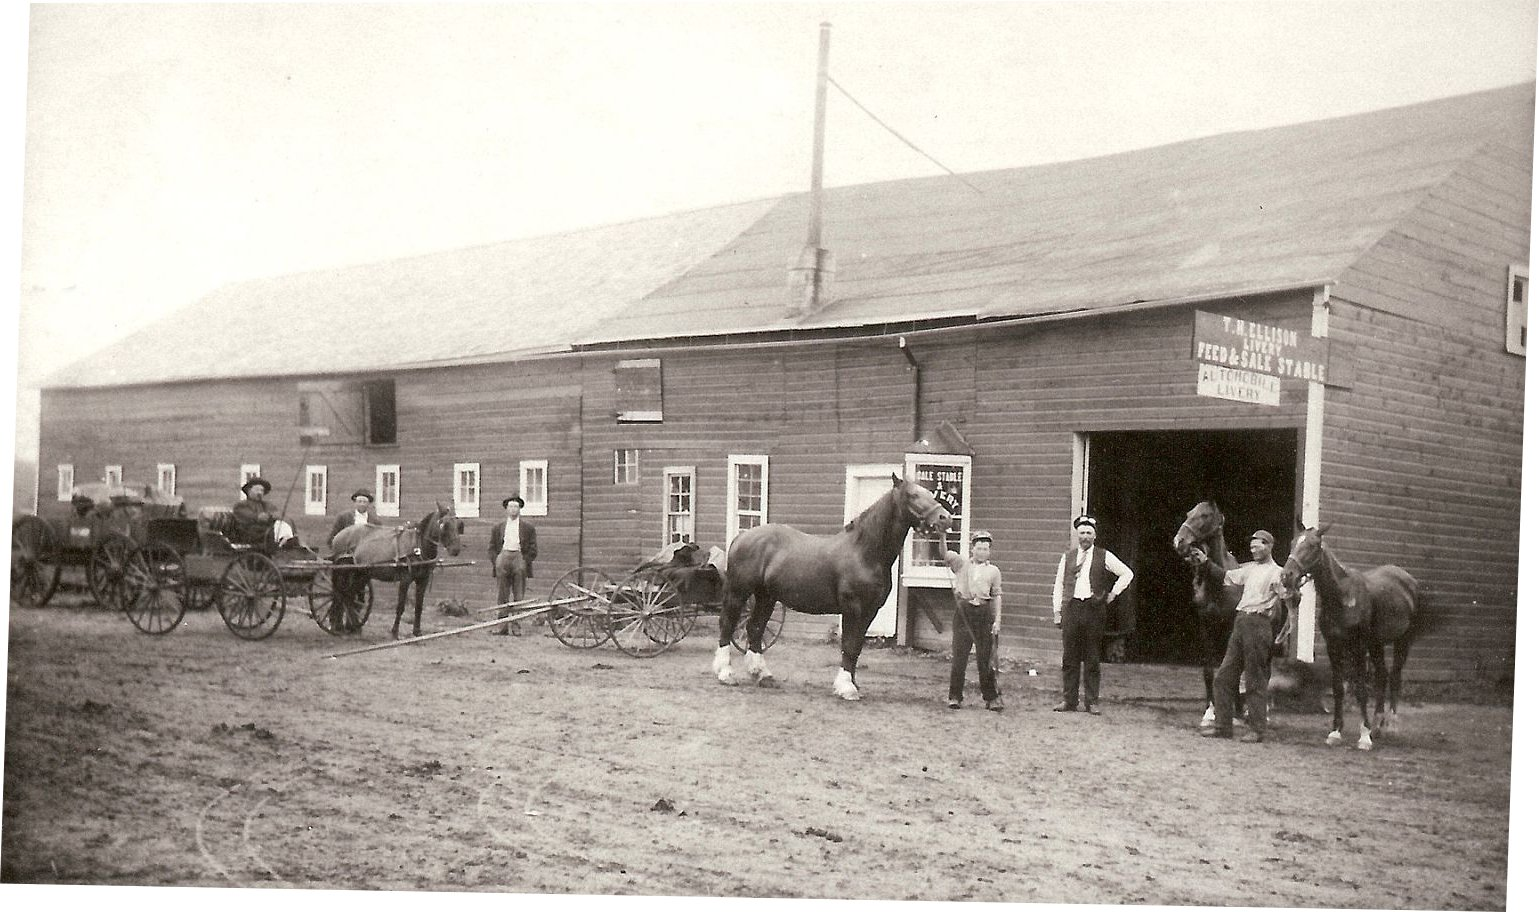 Image of Livery Stable St. John, ND